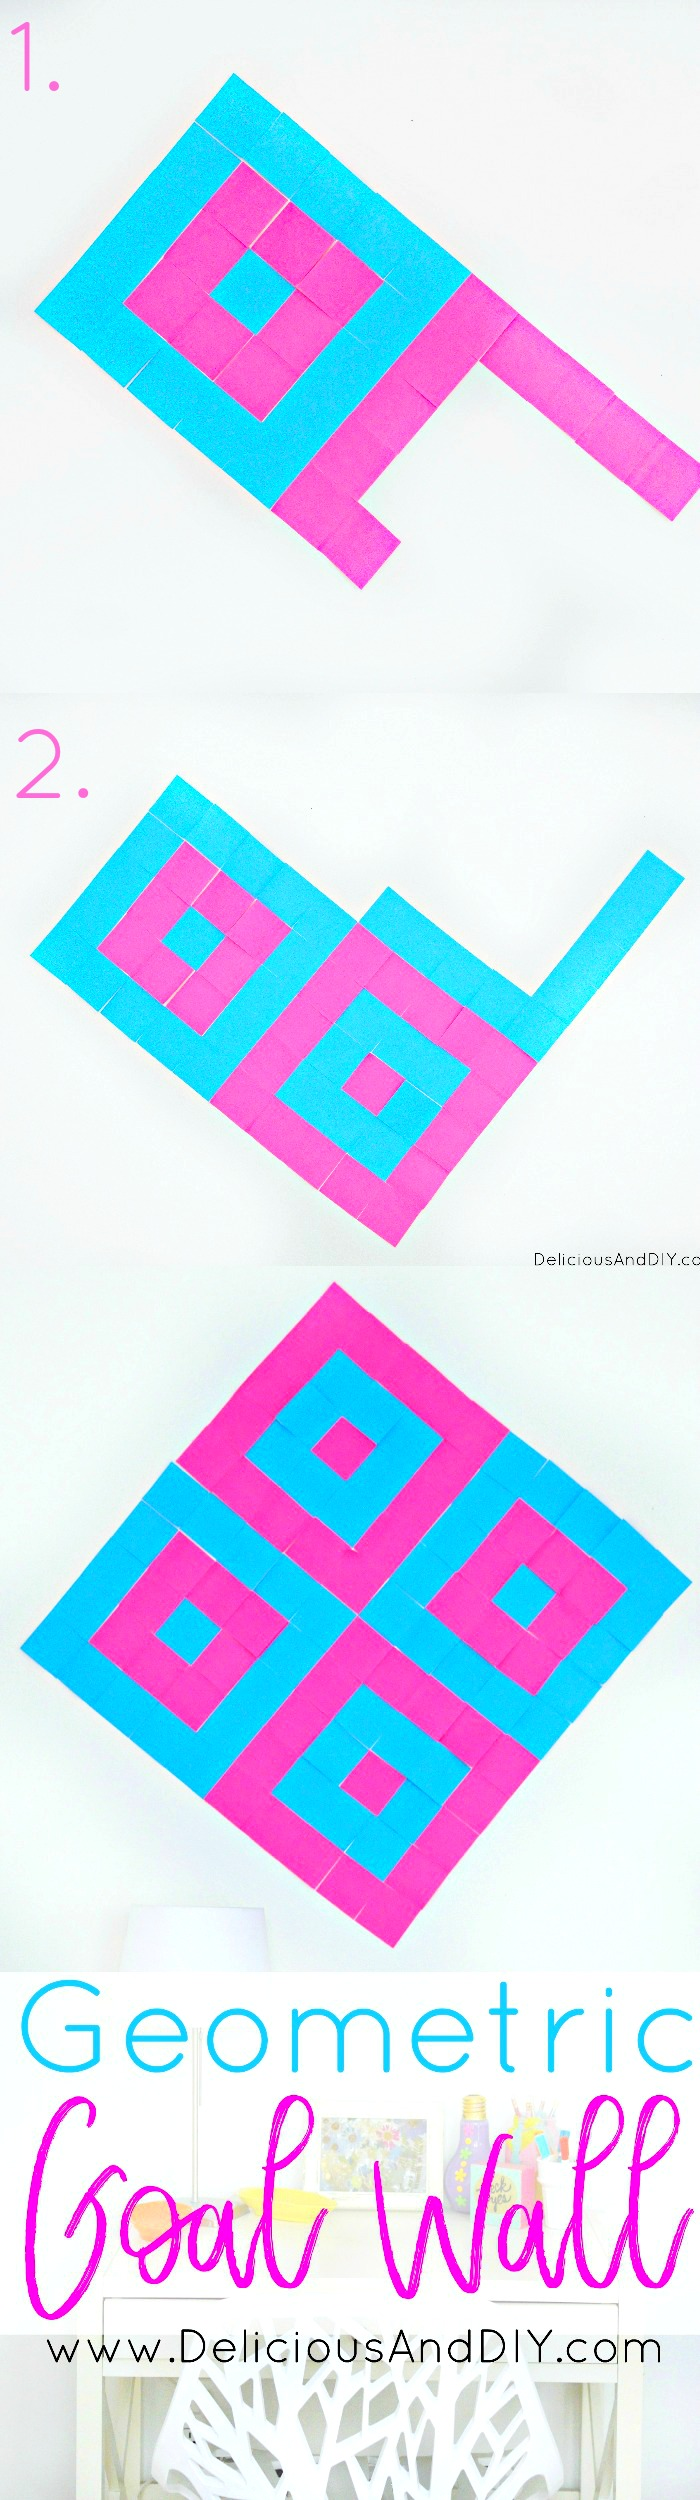 Create a fun Geometric Wall to keep you motivated to set and achieve your goals for the year| Post- It Wall Goal Wall| DIY Crafts| Goal Wall Ideas| Organizing and Goal Setting Wall| Post-It Crafts Wall| Post-It pattern| Organizing Wall|